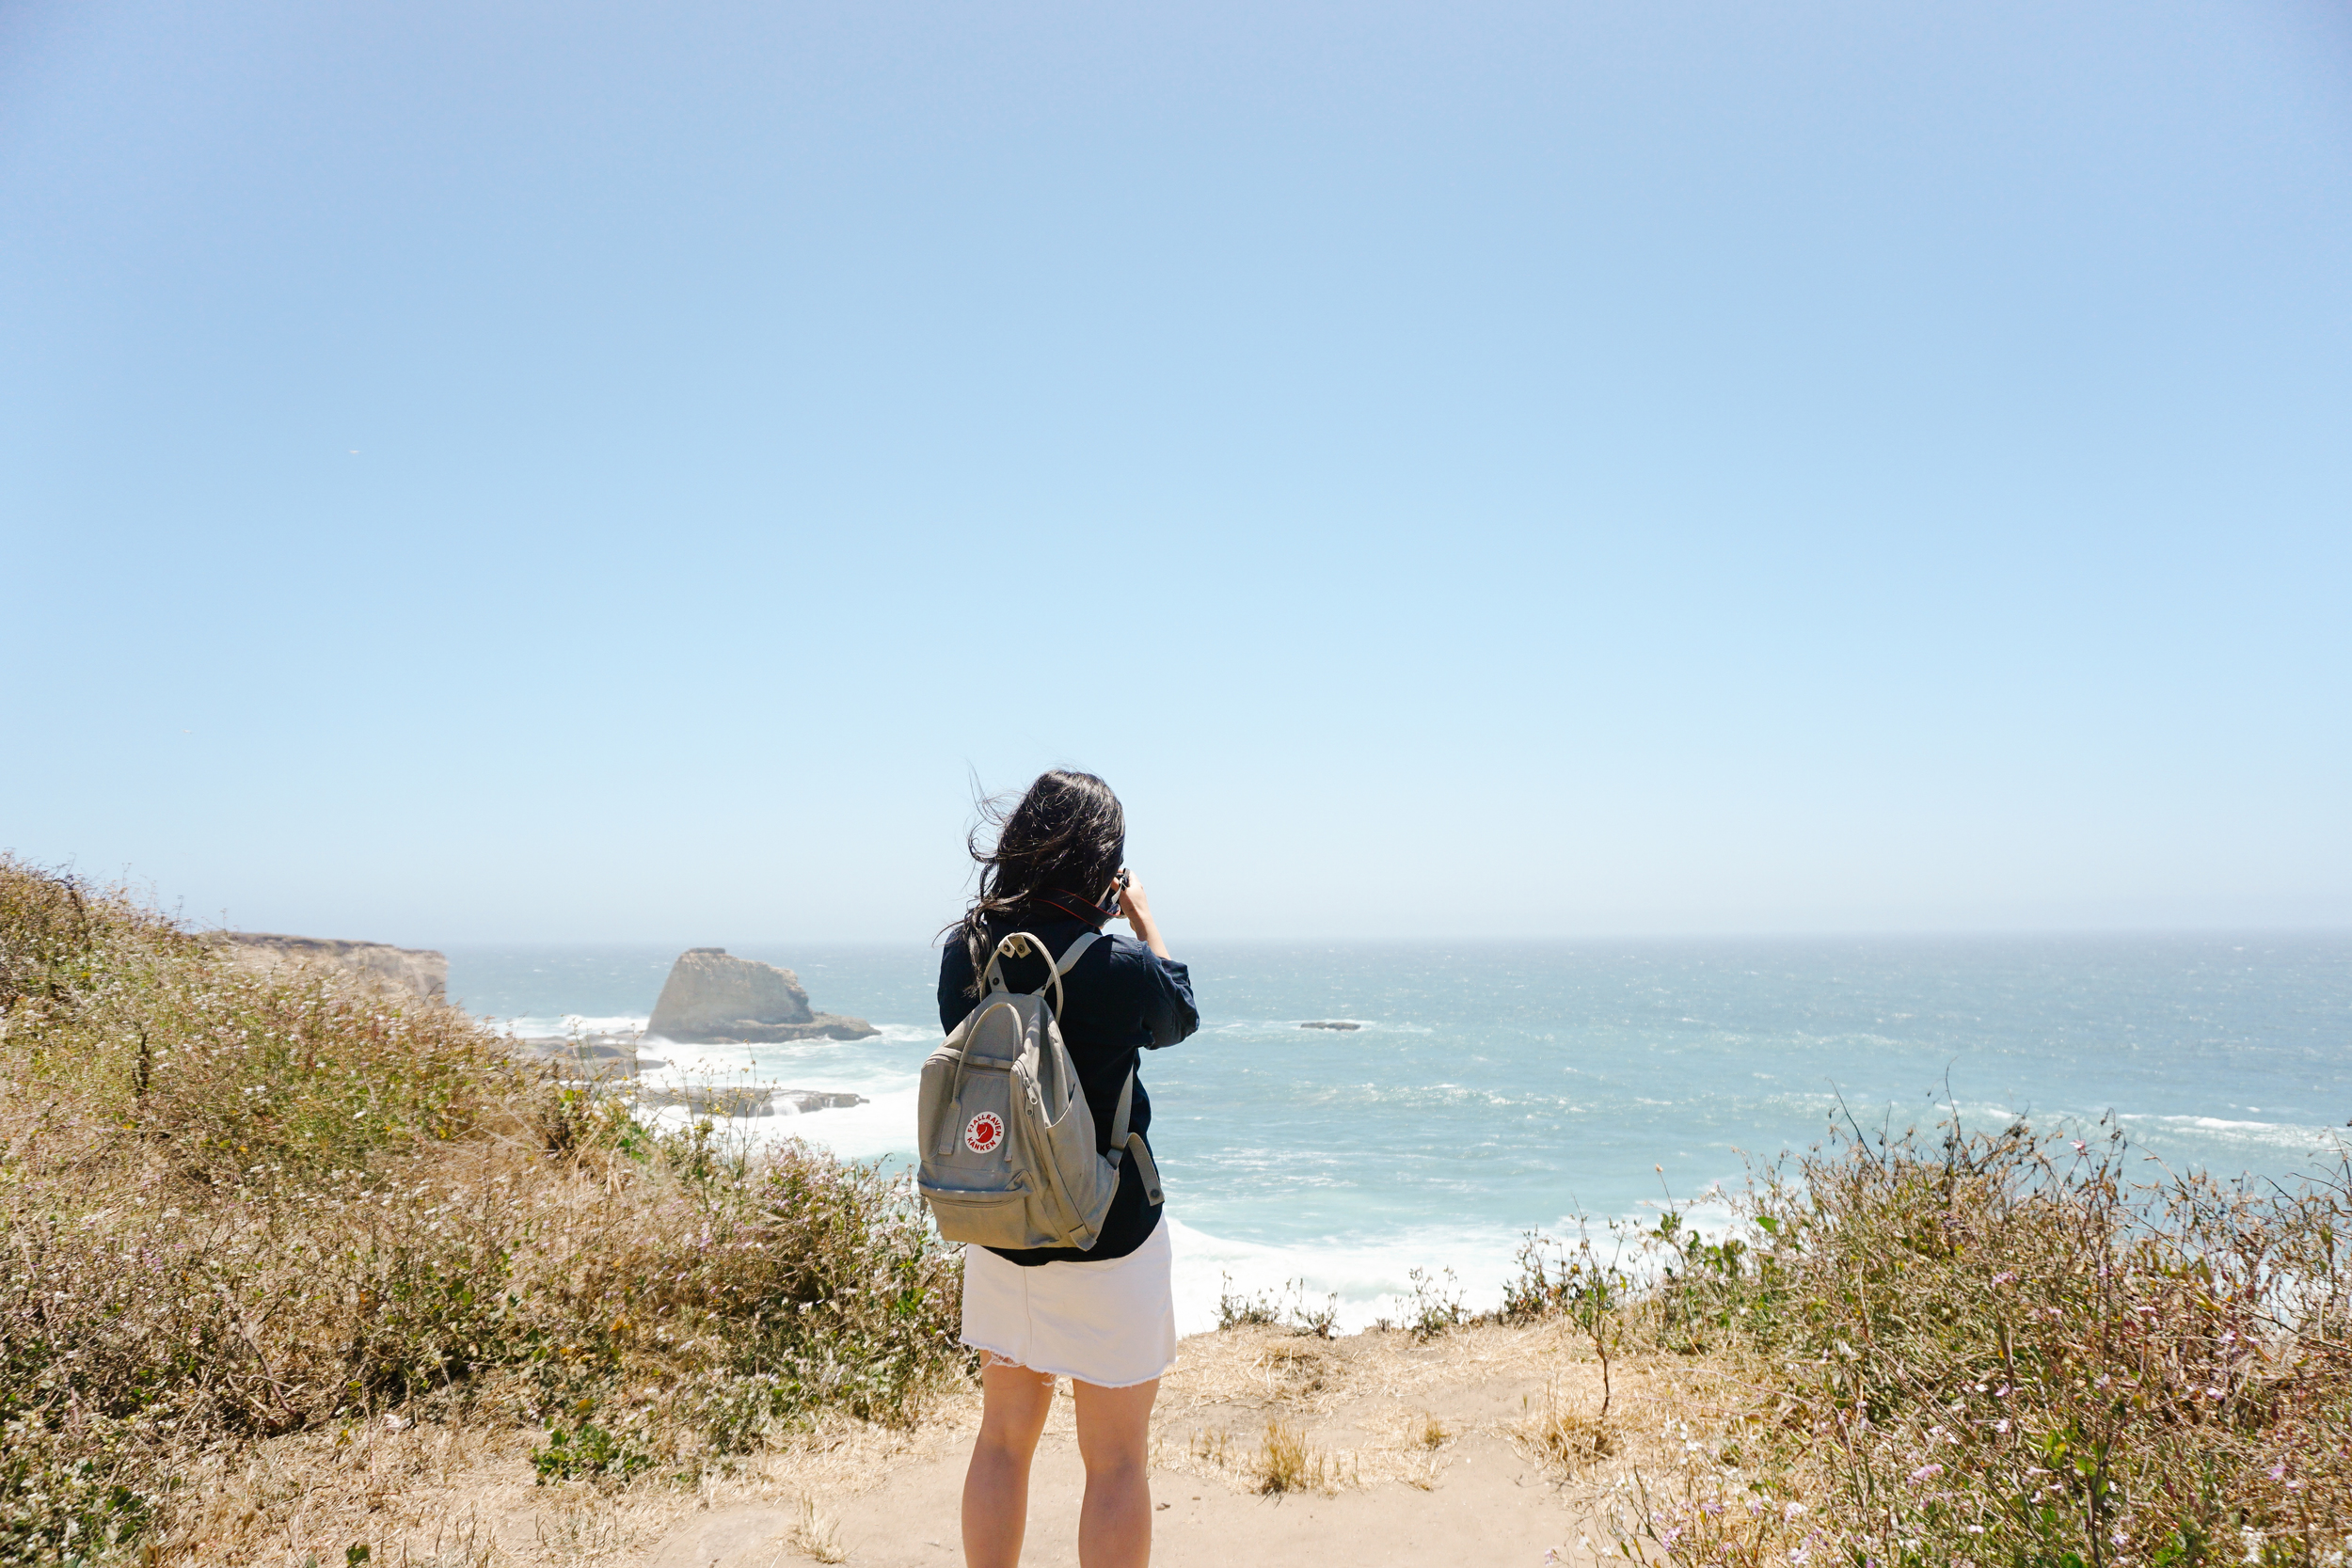 Mariel and the beautiful ocean.  P.S. Seeing these pictures makes me want to buy a   Kanken   backpack! Someone stop me!